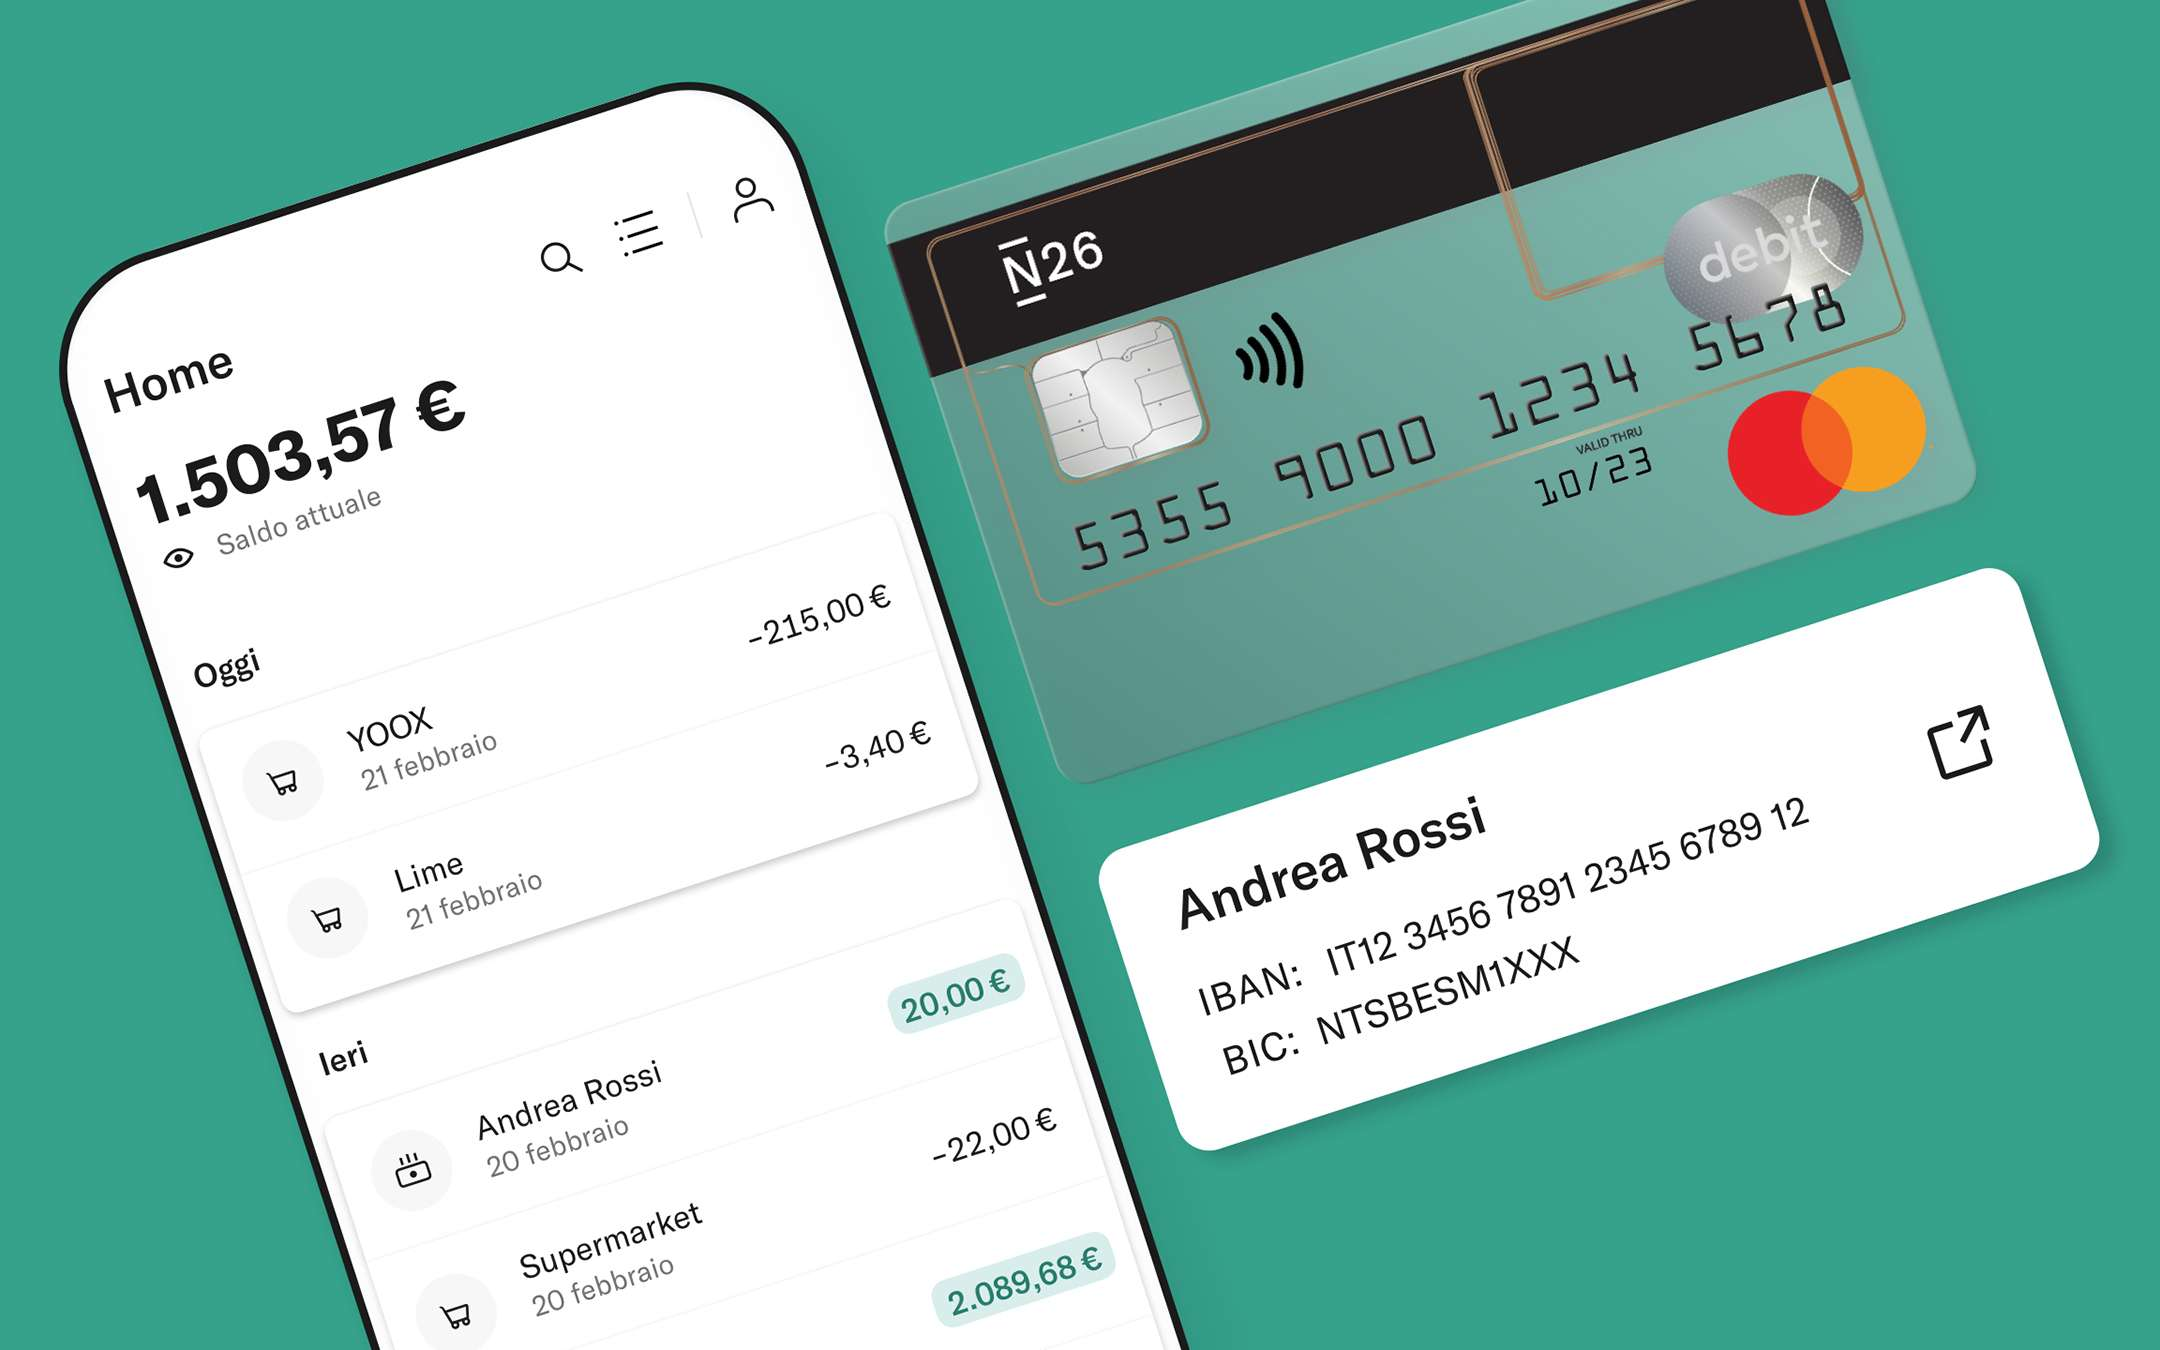 N26: foreign wire transfers in over 30 currencies